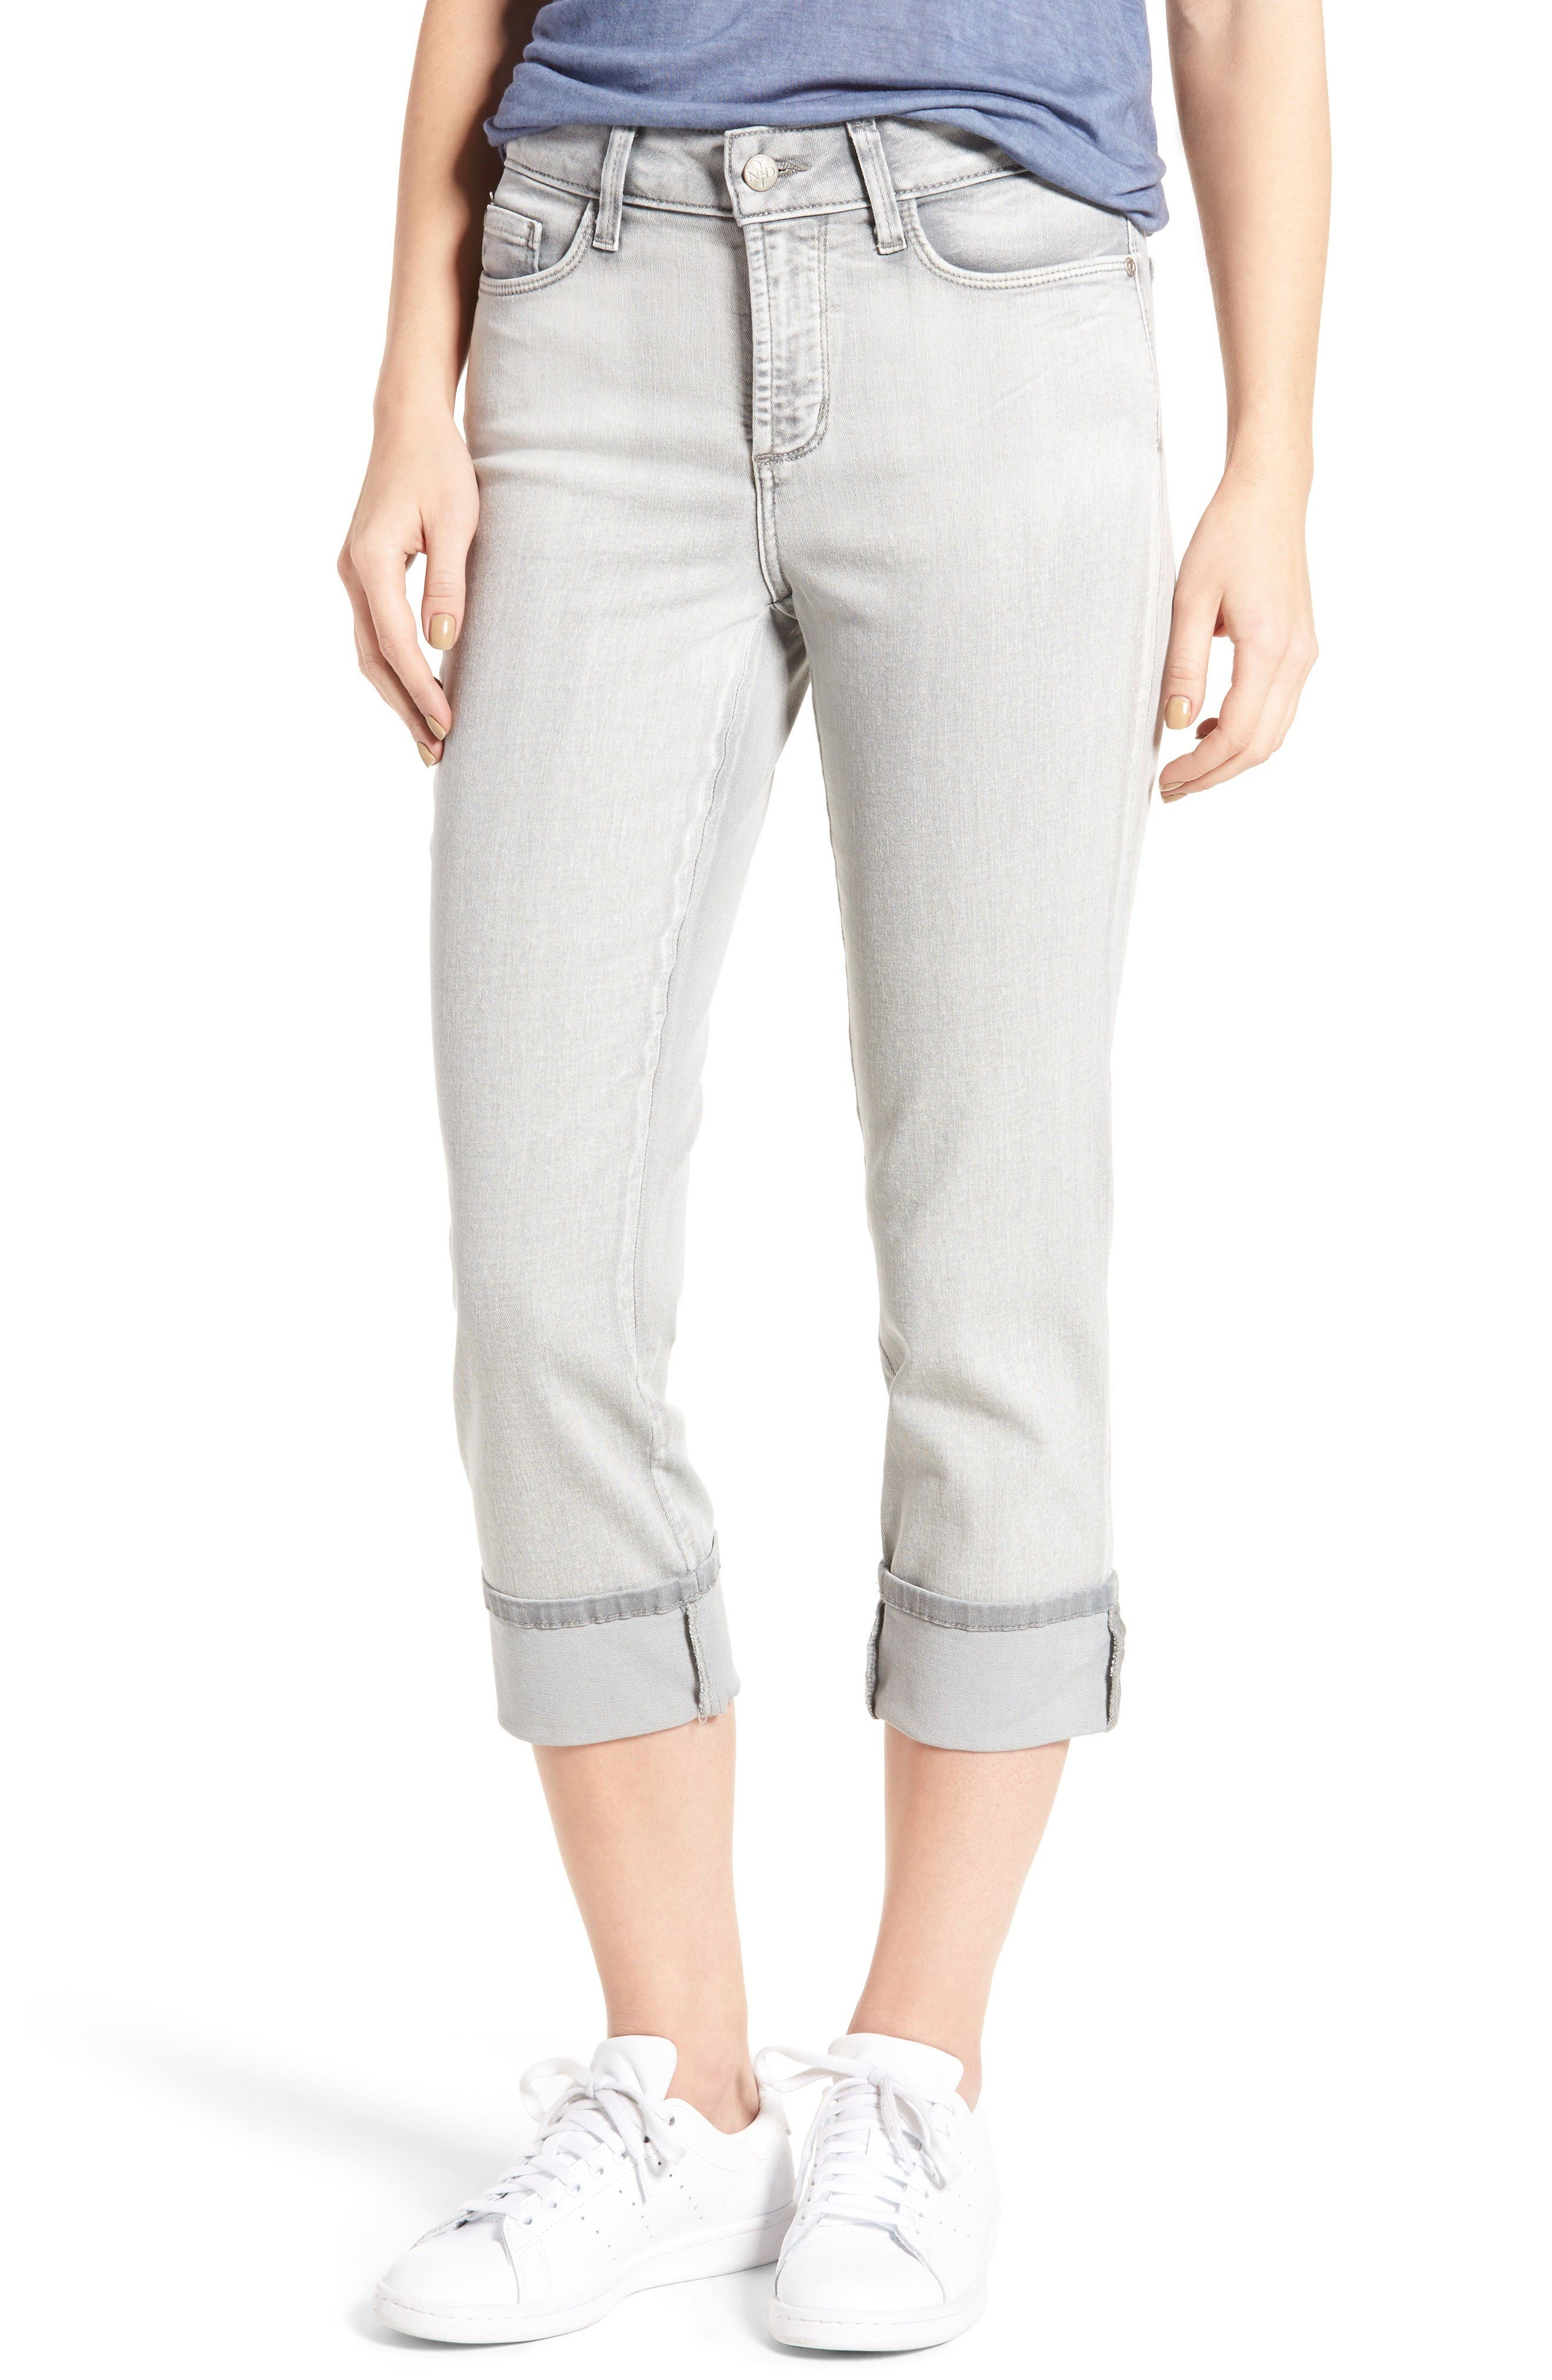 'Dayla' Colored Wide Cuff Capri Jeans,                             Main thumbnail 1, color,                             Reims